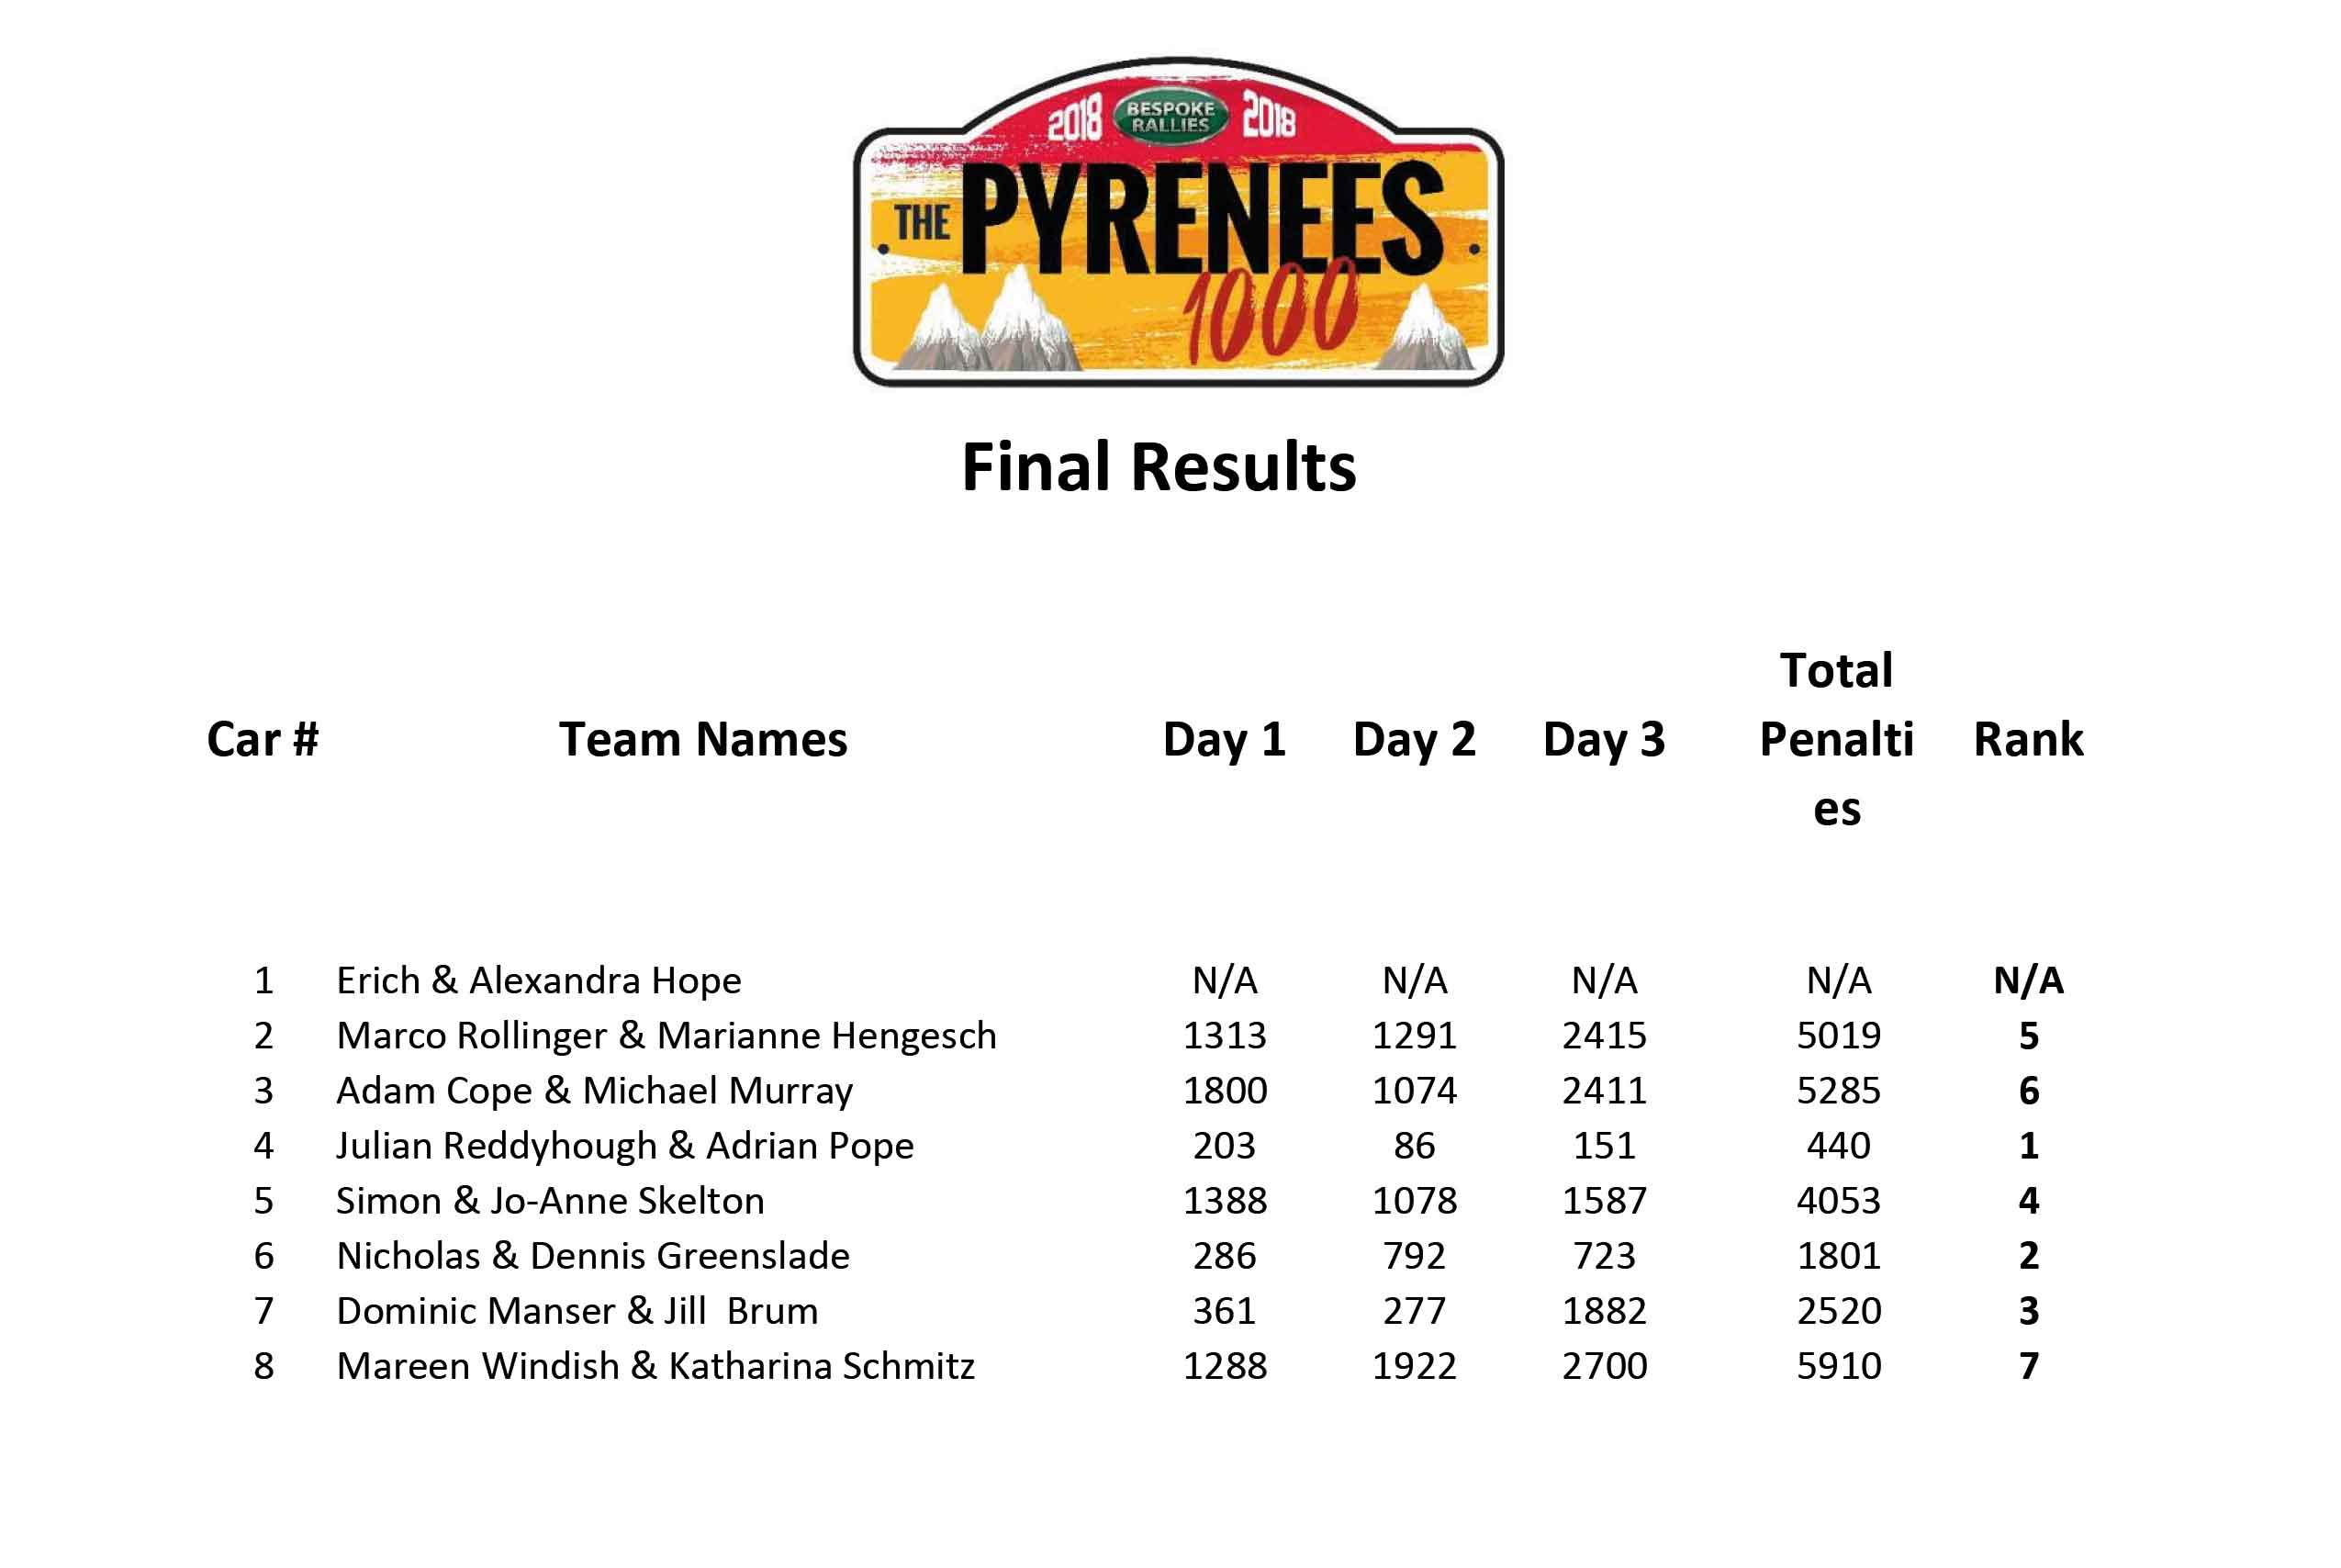 Pyrenees 1000 Competition Results are in!